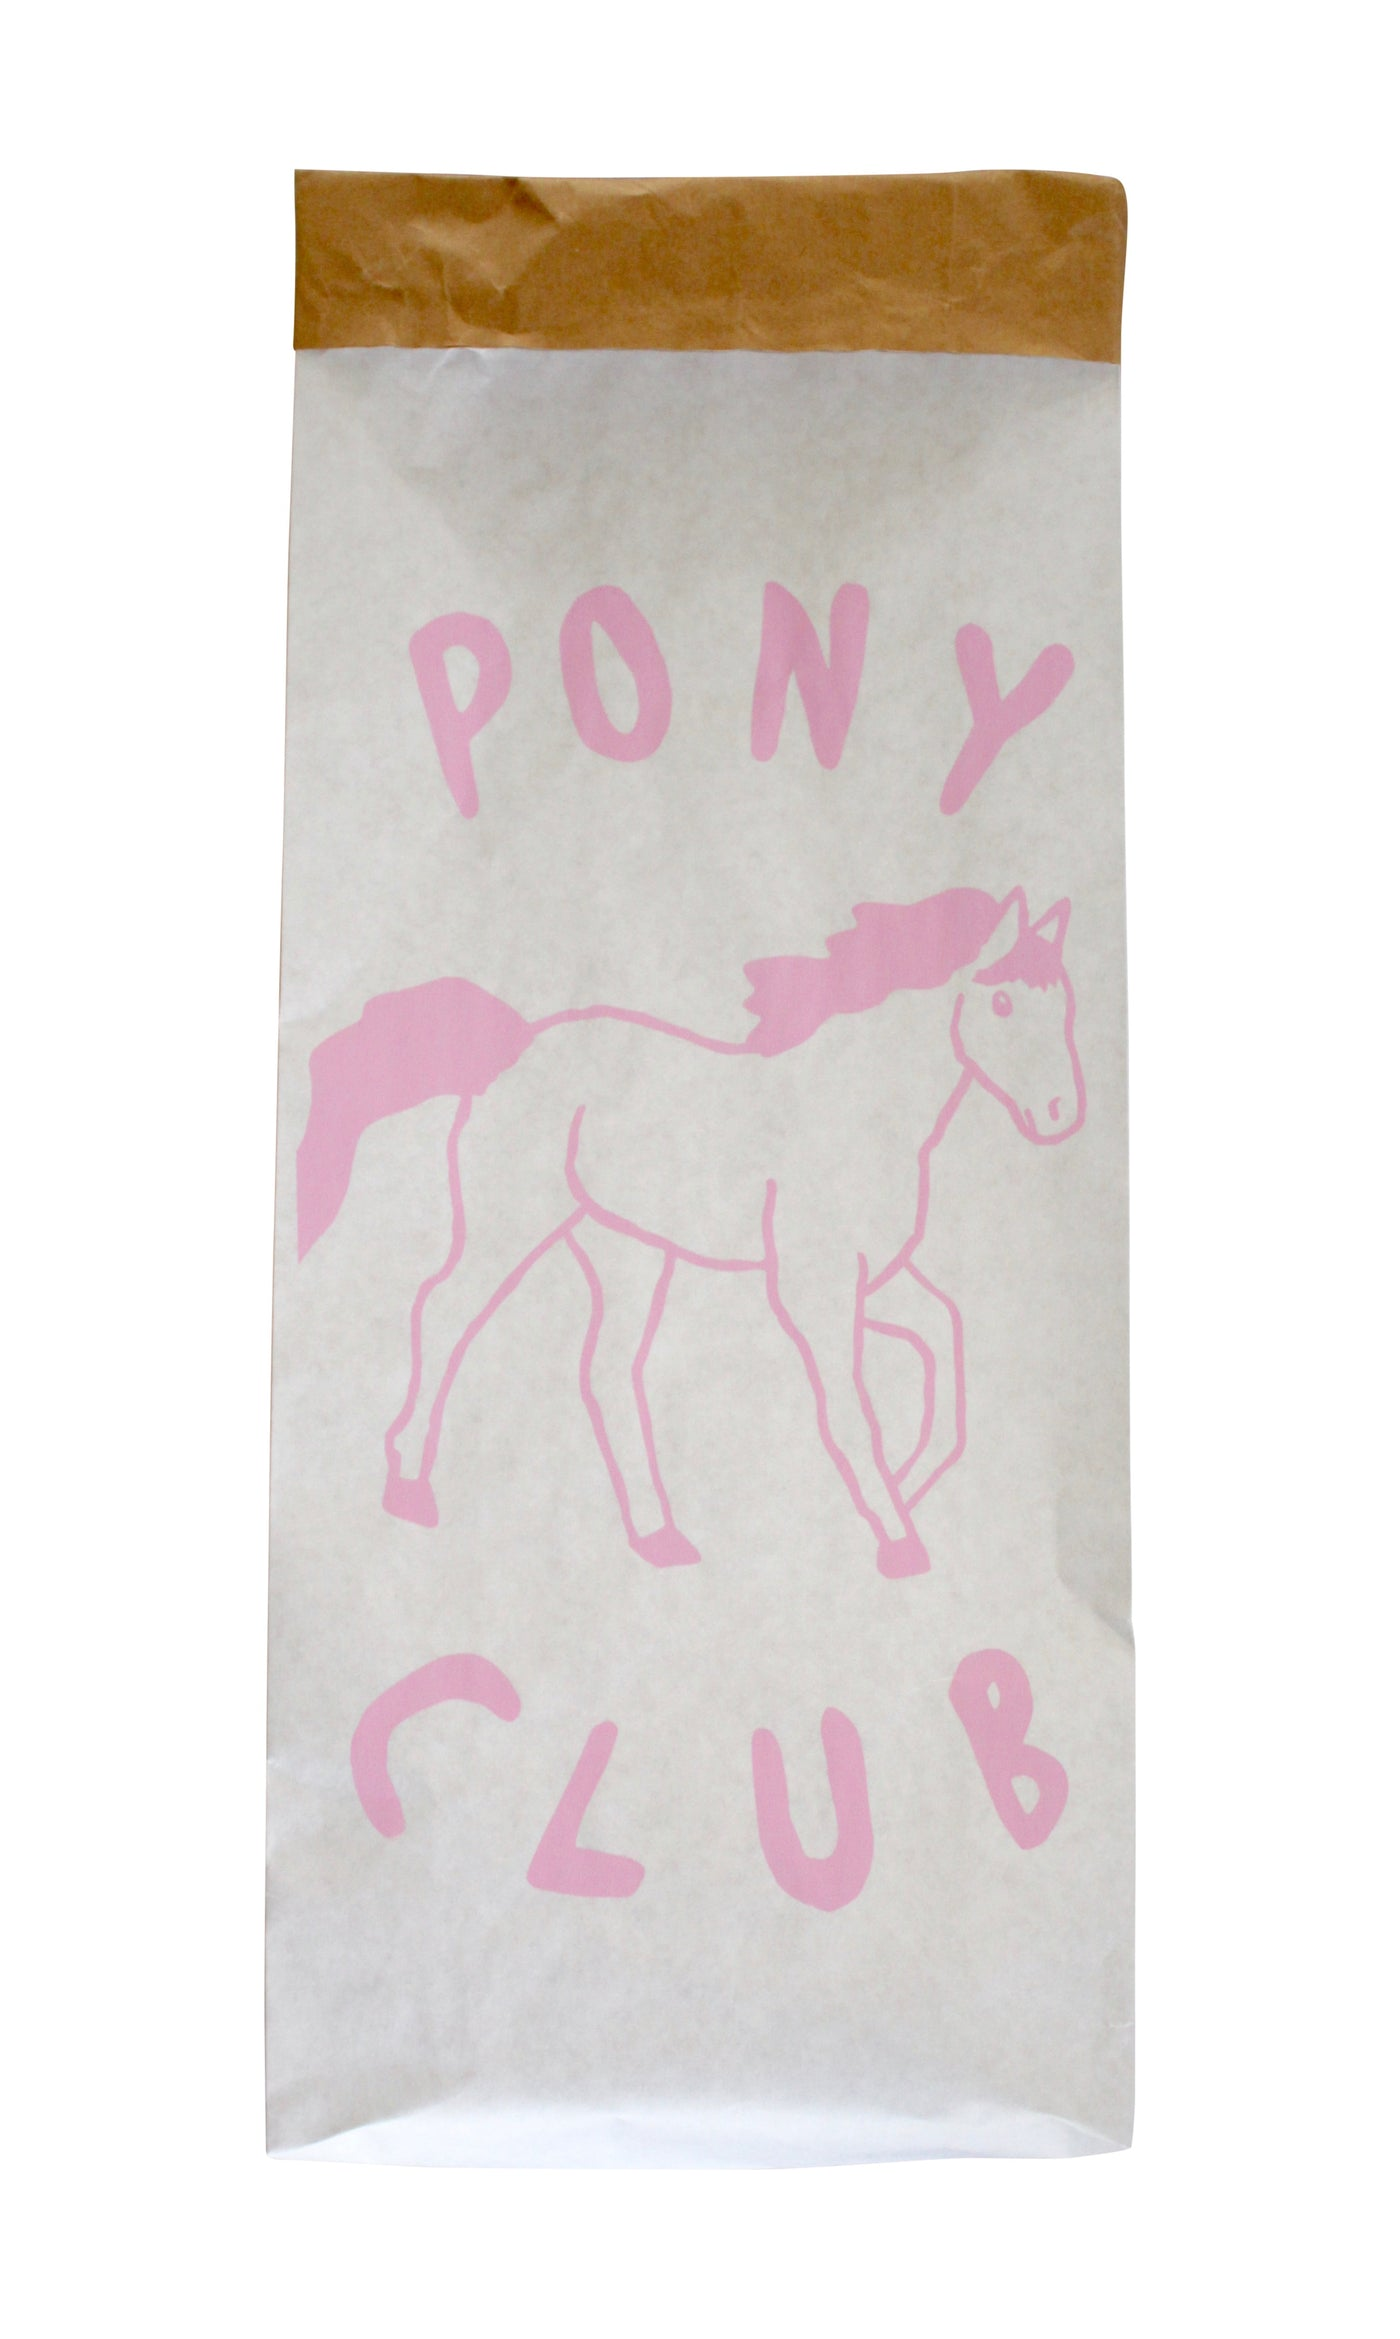 Henry + Co Pink Pony Club Storage Bag